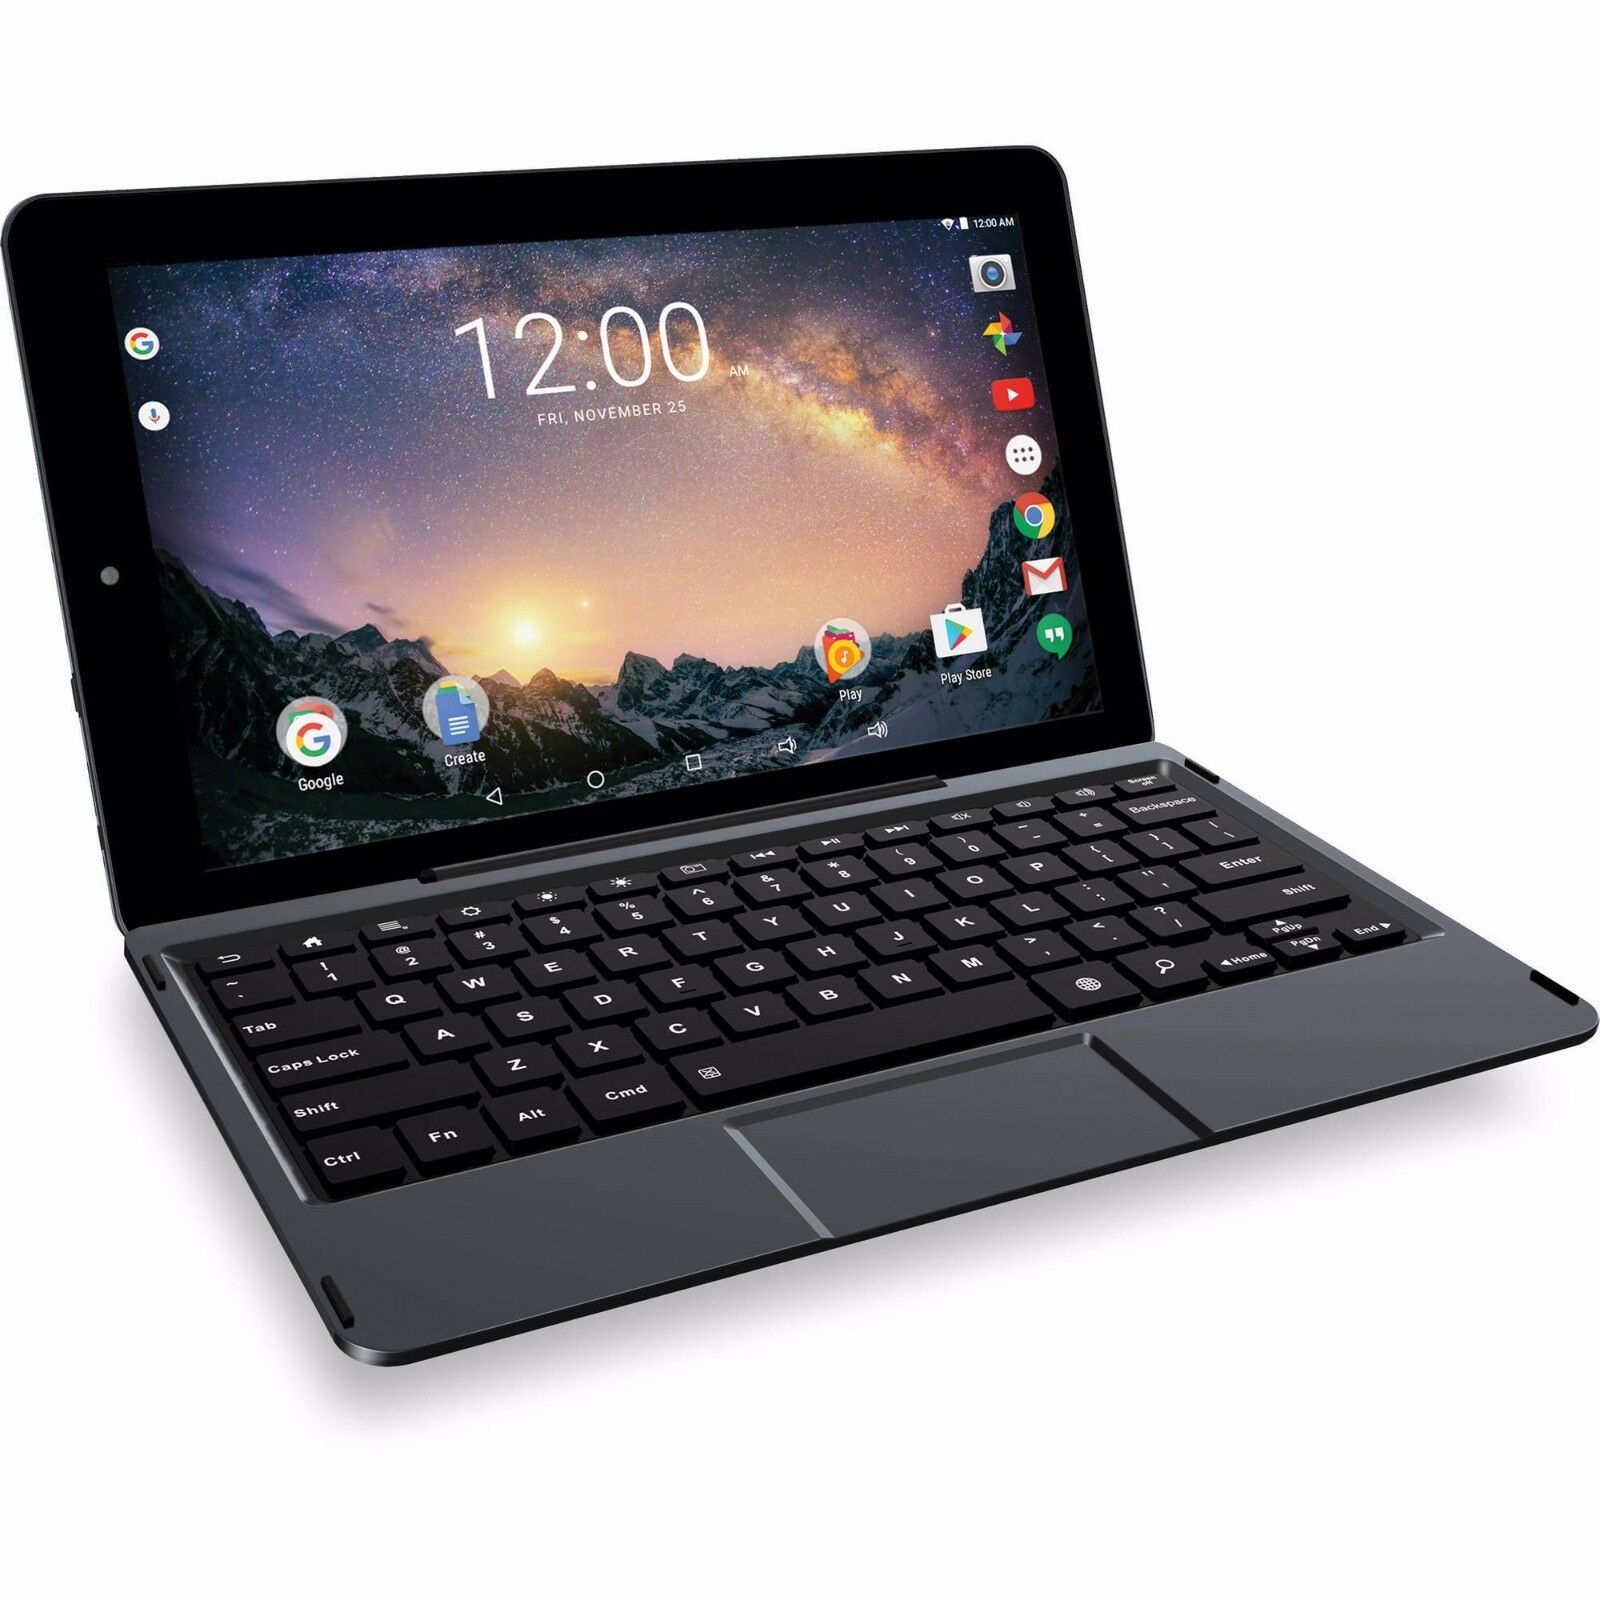 $89.88 - RCA Galileo 32GB Pro 11.5 Touchscreen QuadCore Android 6.0 Keyboard Tablet BLACK